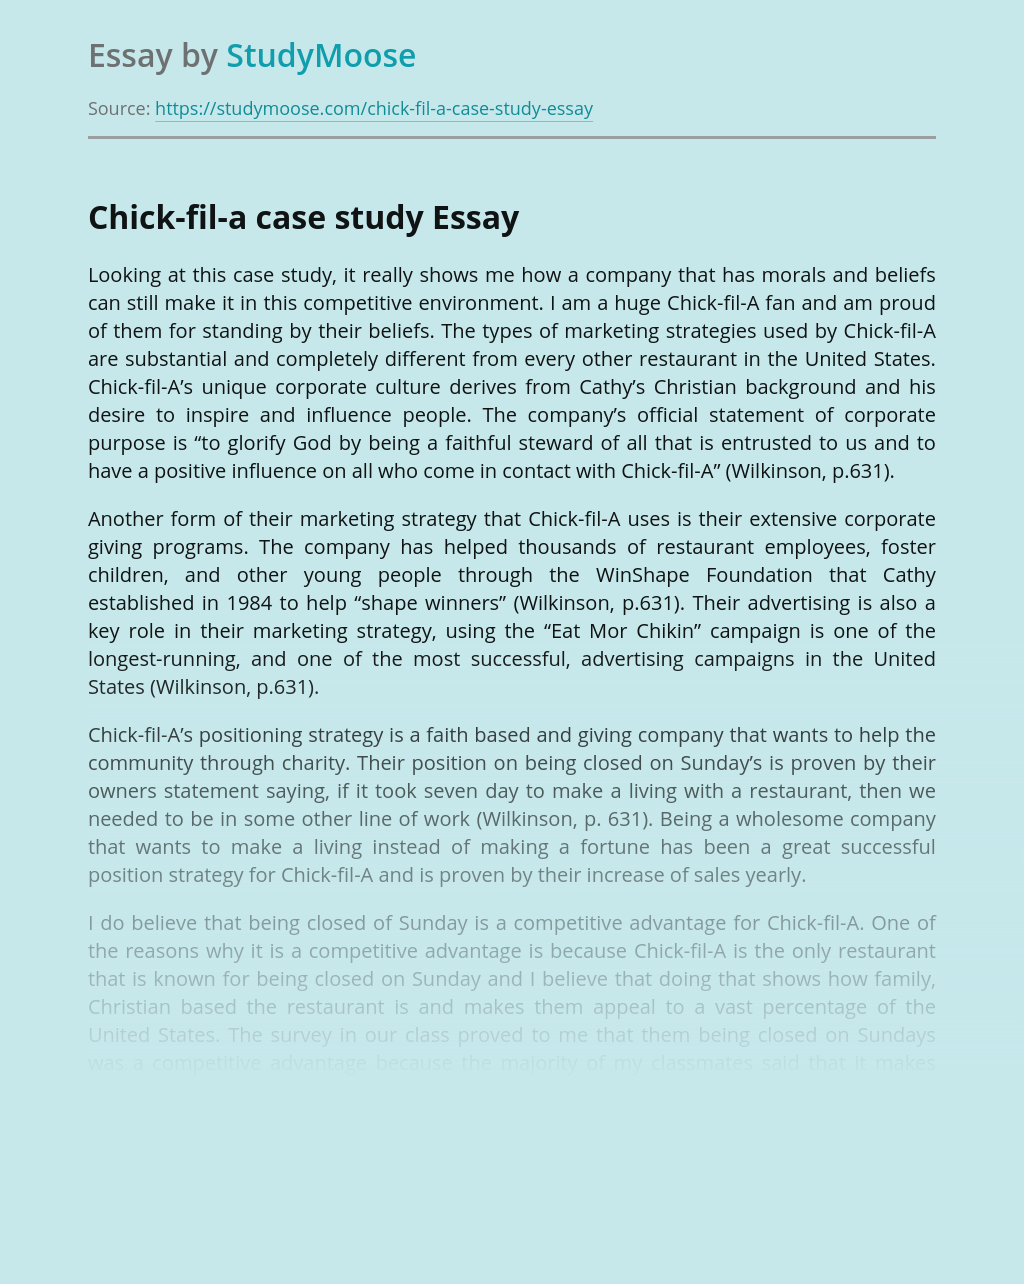 Chick-fil-a case study